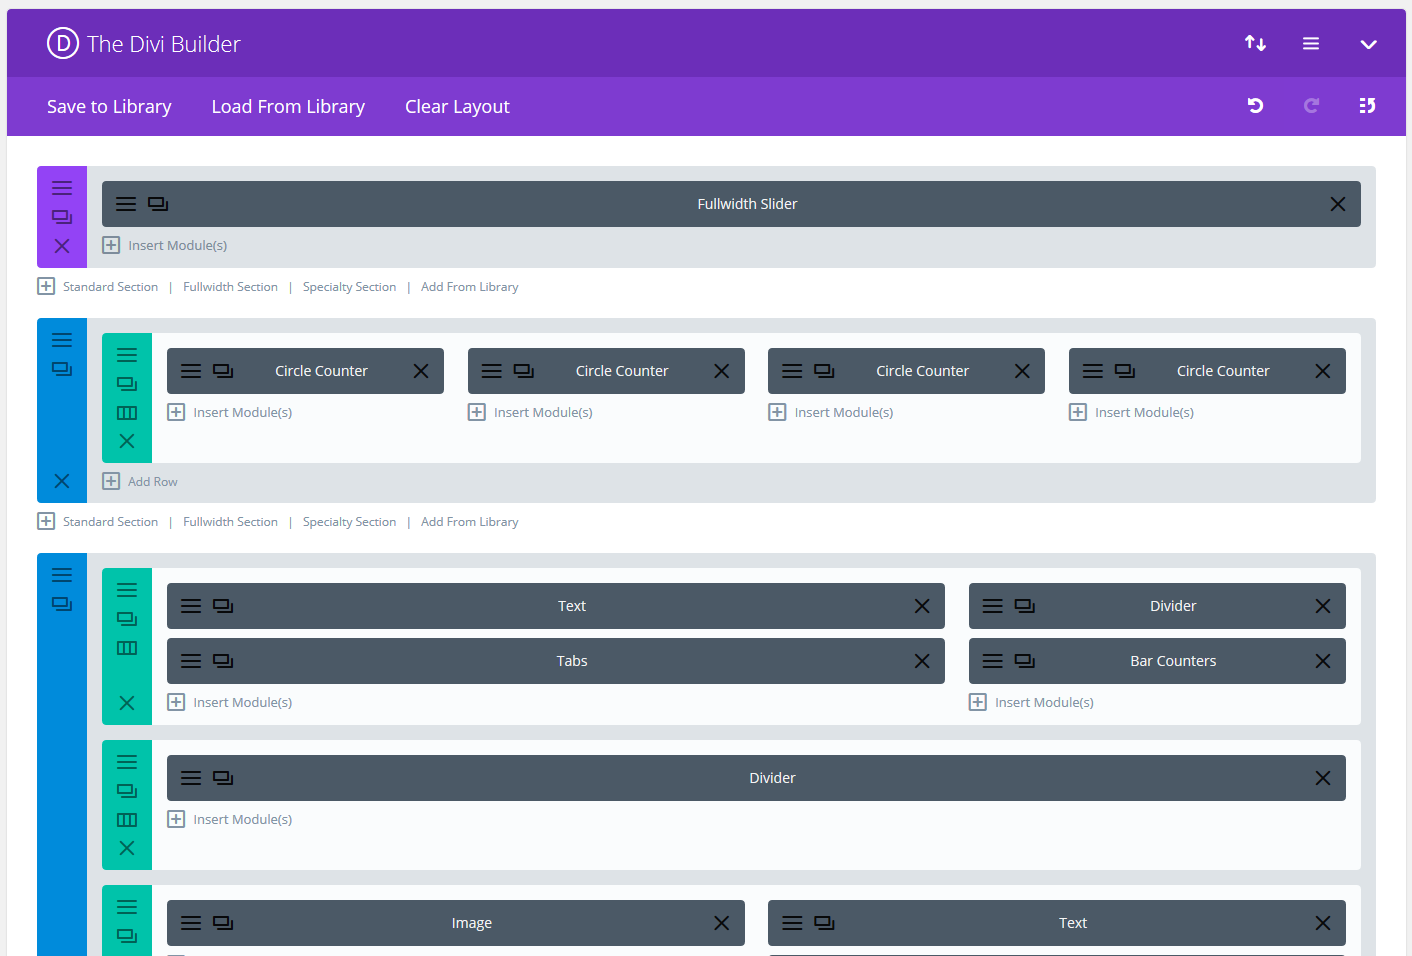 An example of a divi builder layout